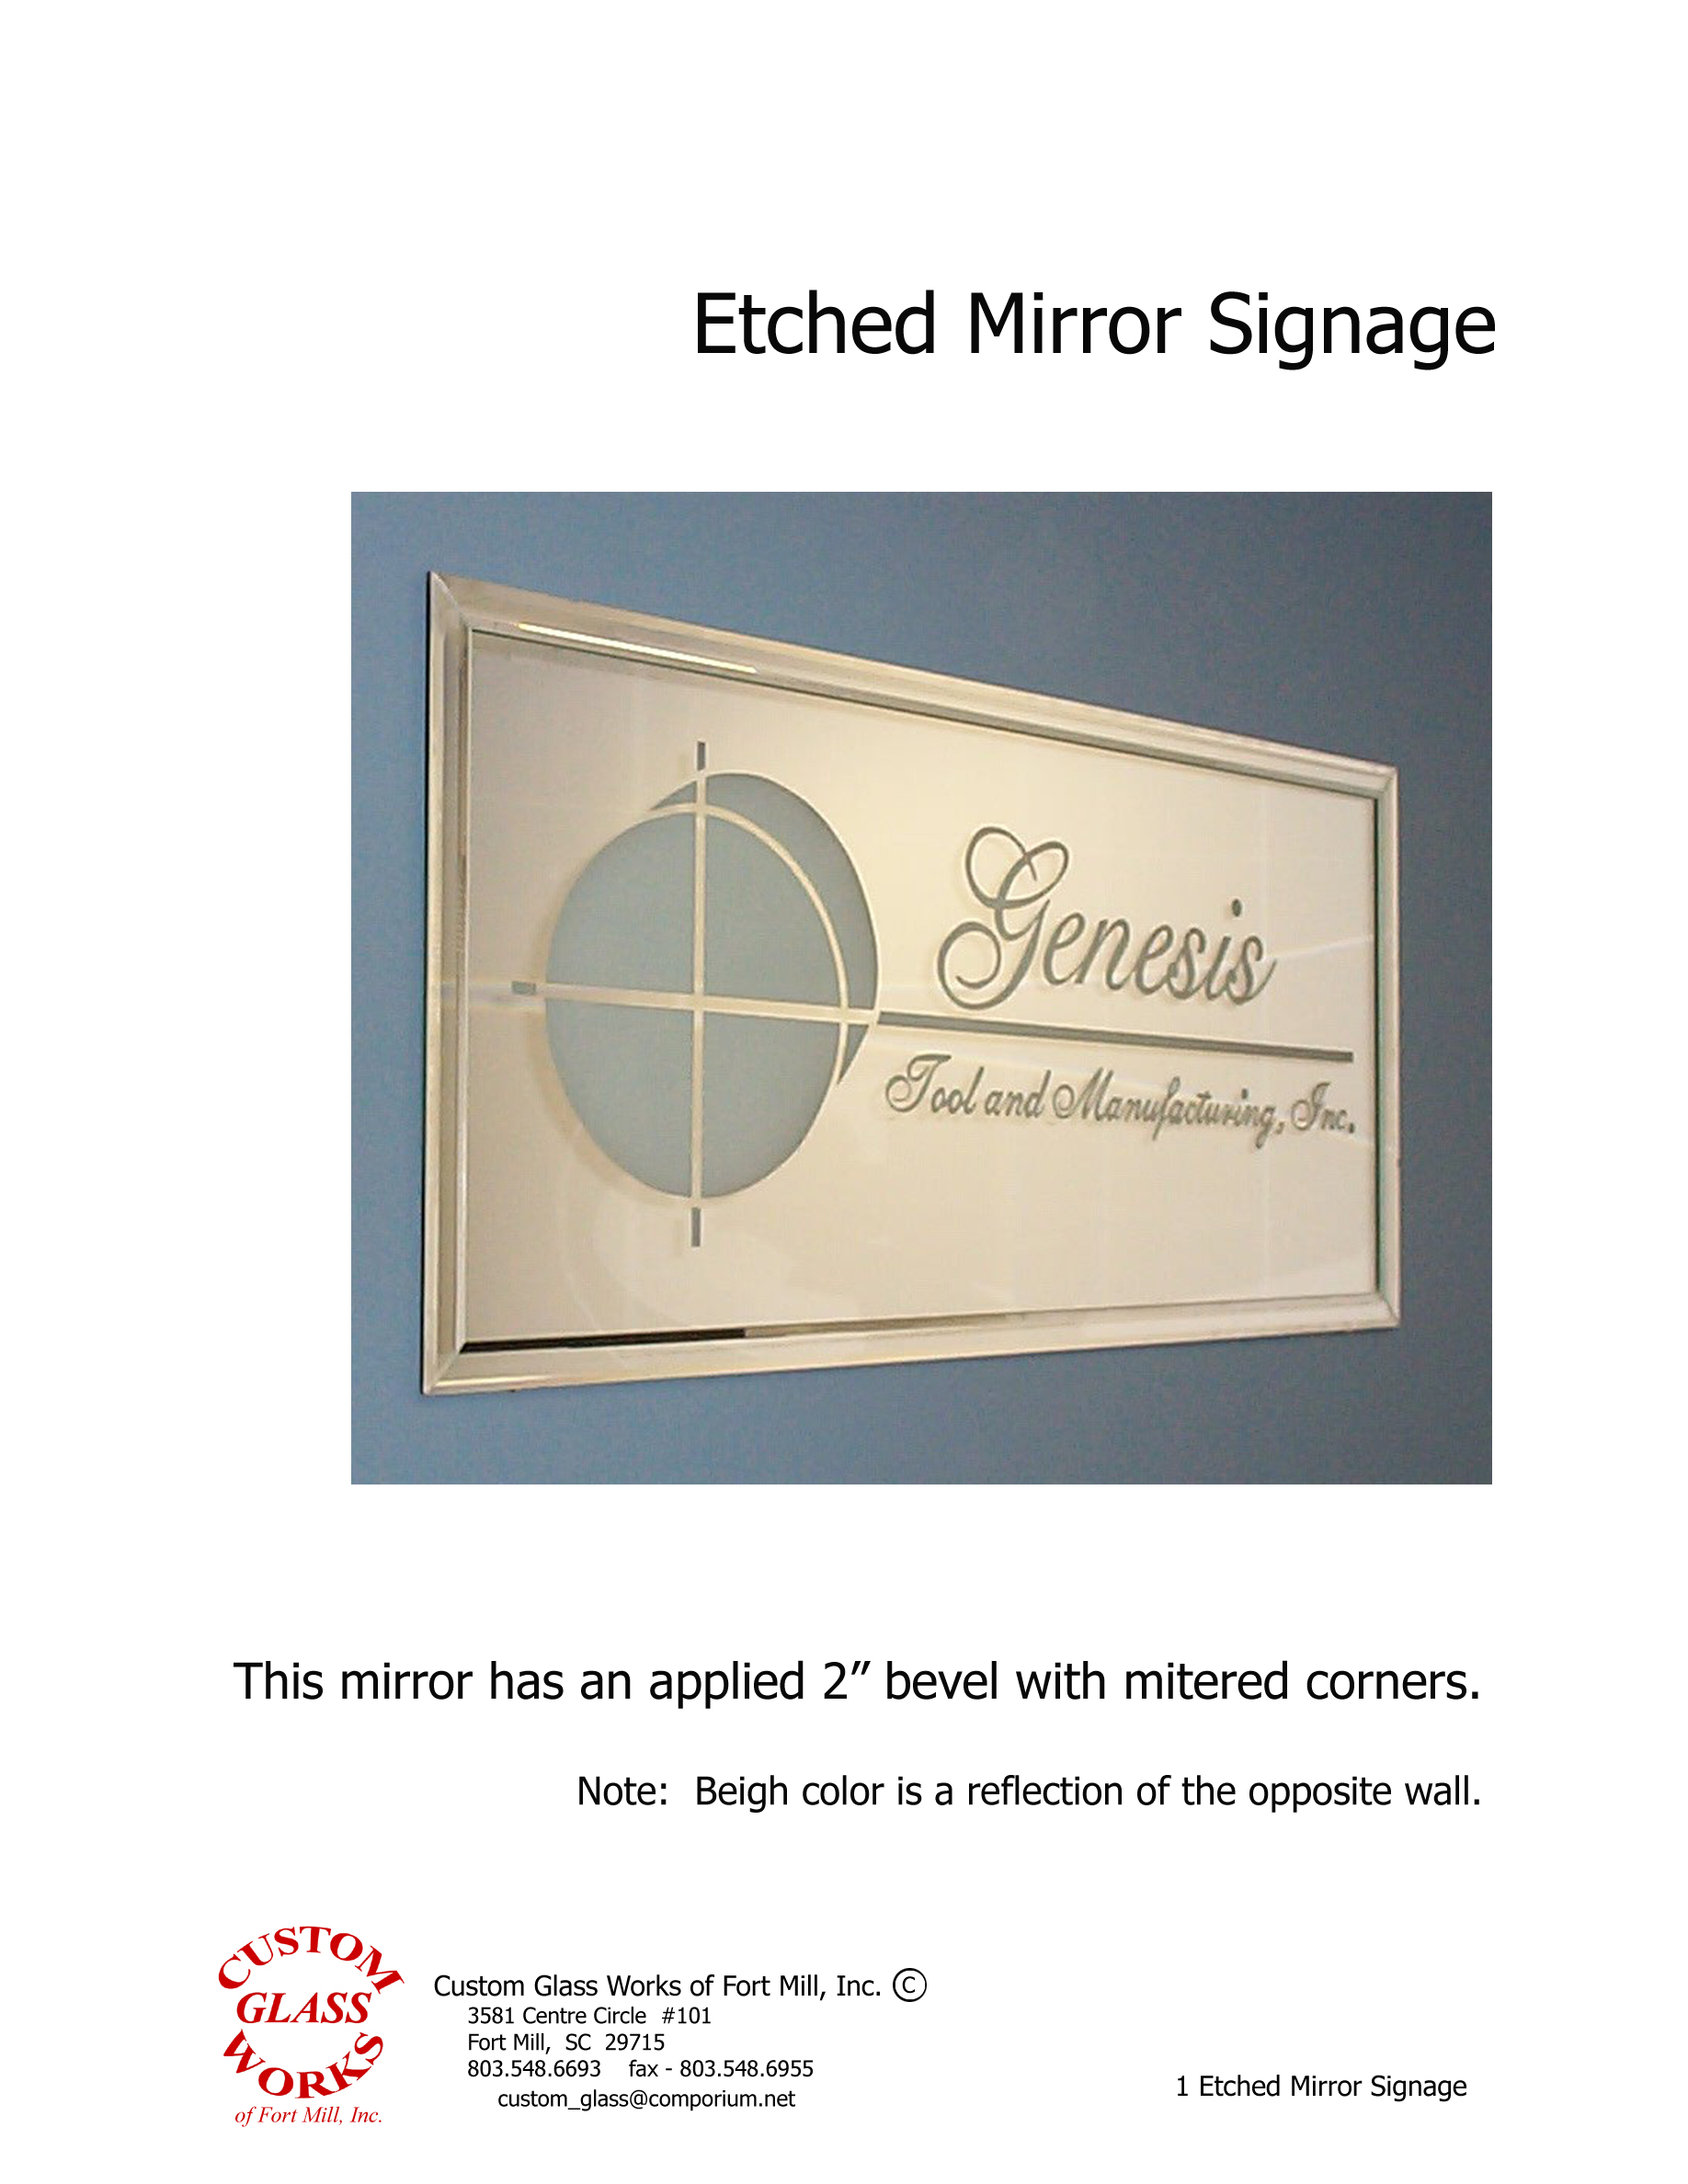 1 Etched Mirror Signage